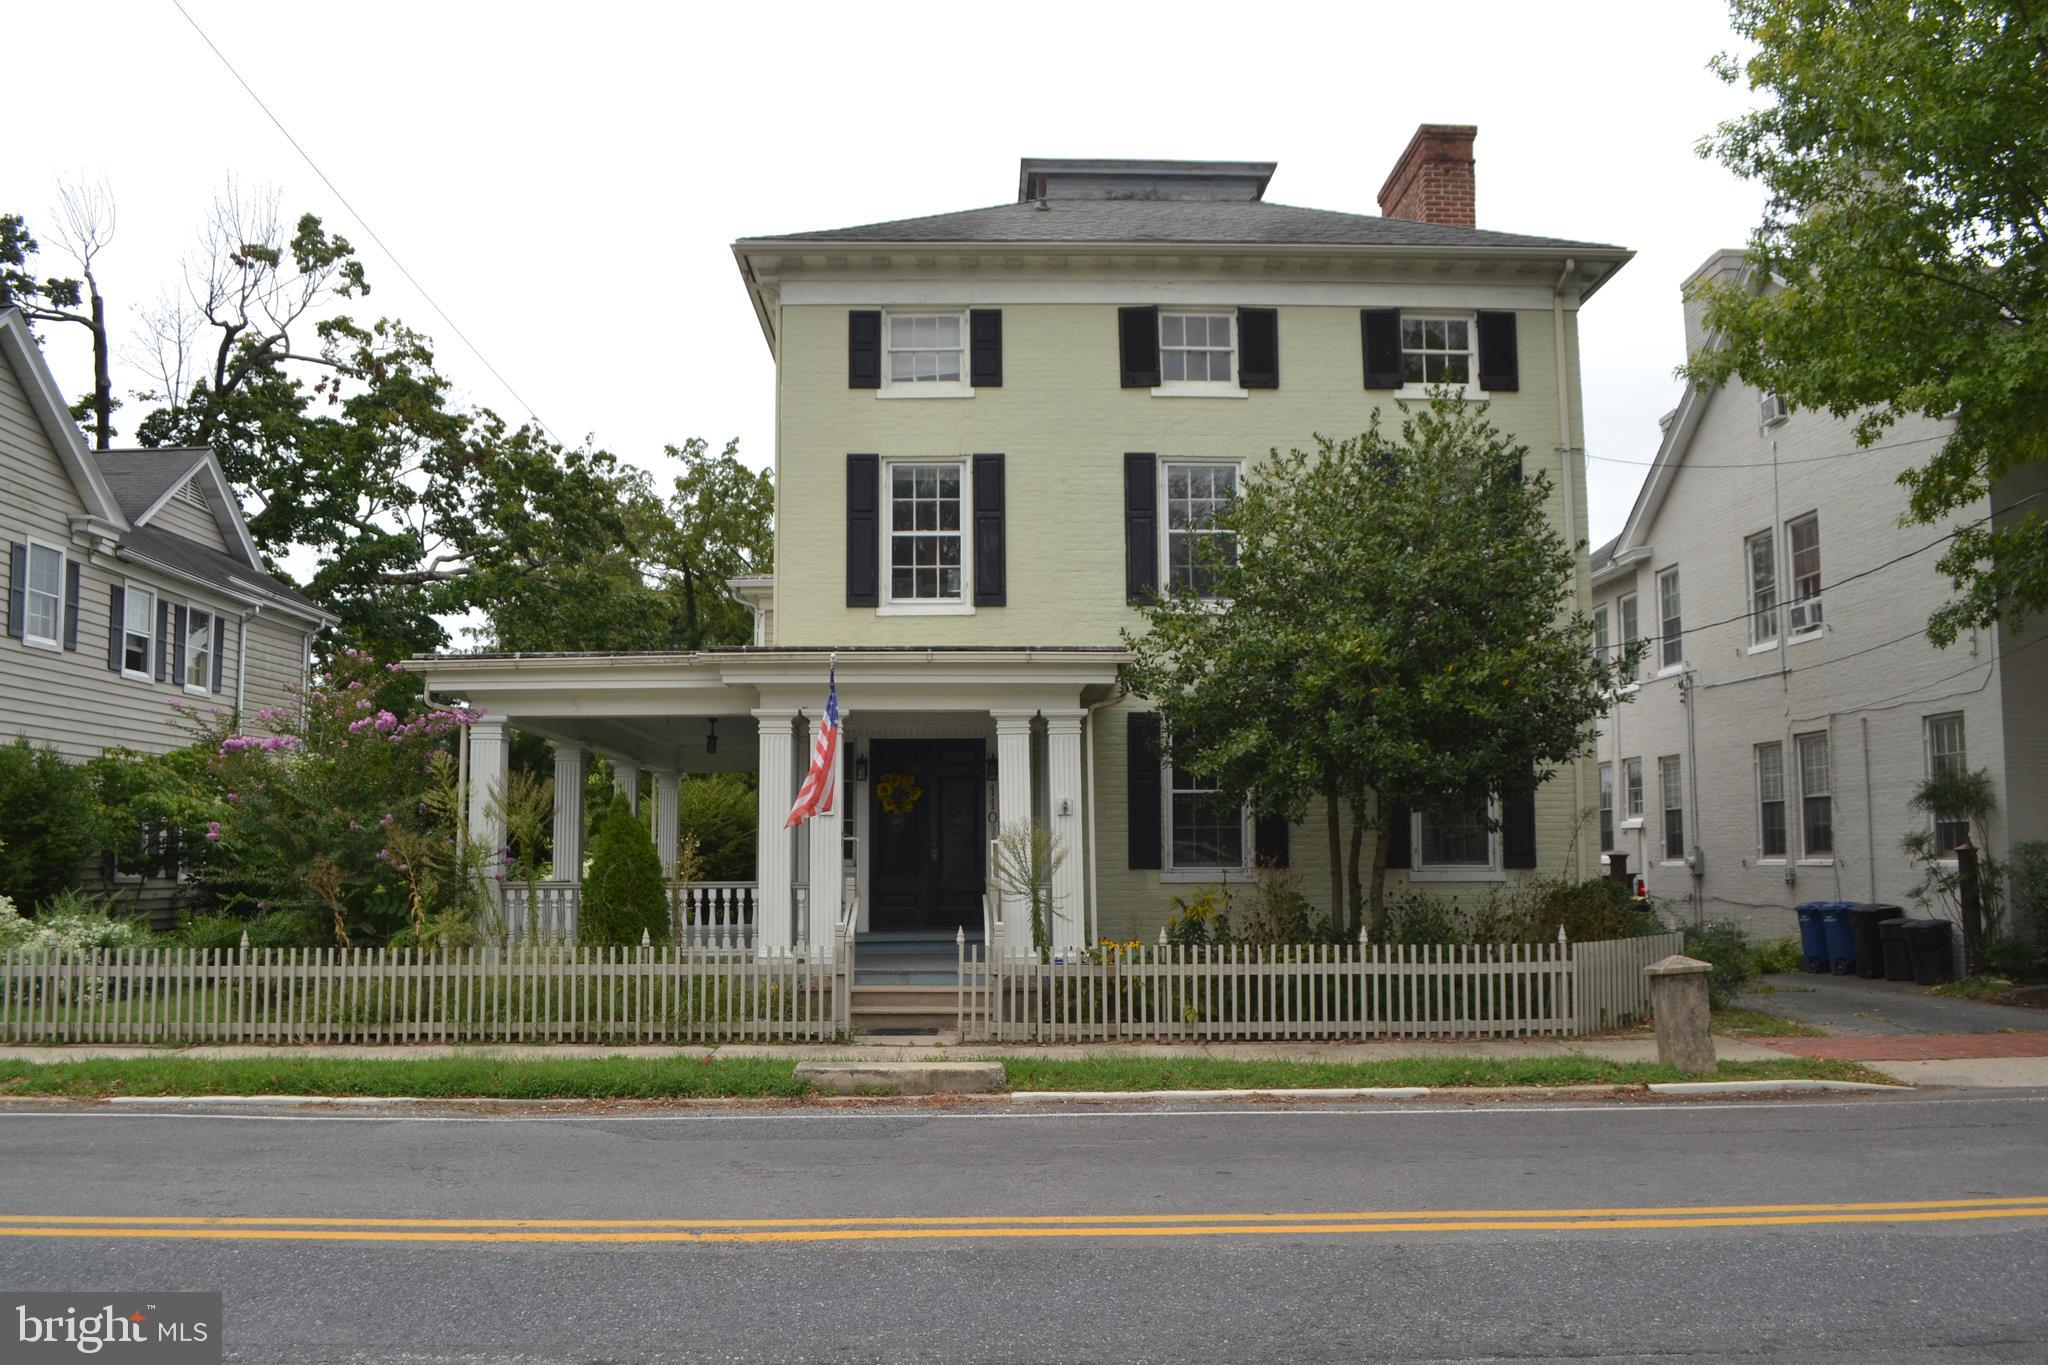 110 S Liberty St, Centreville, MD, 21617